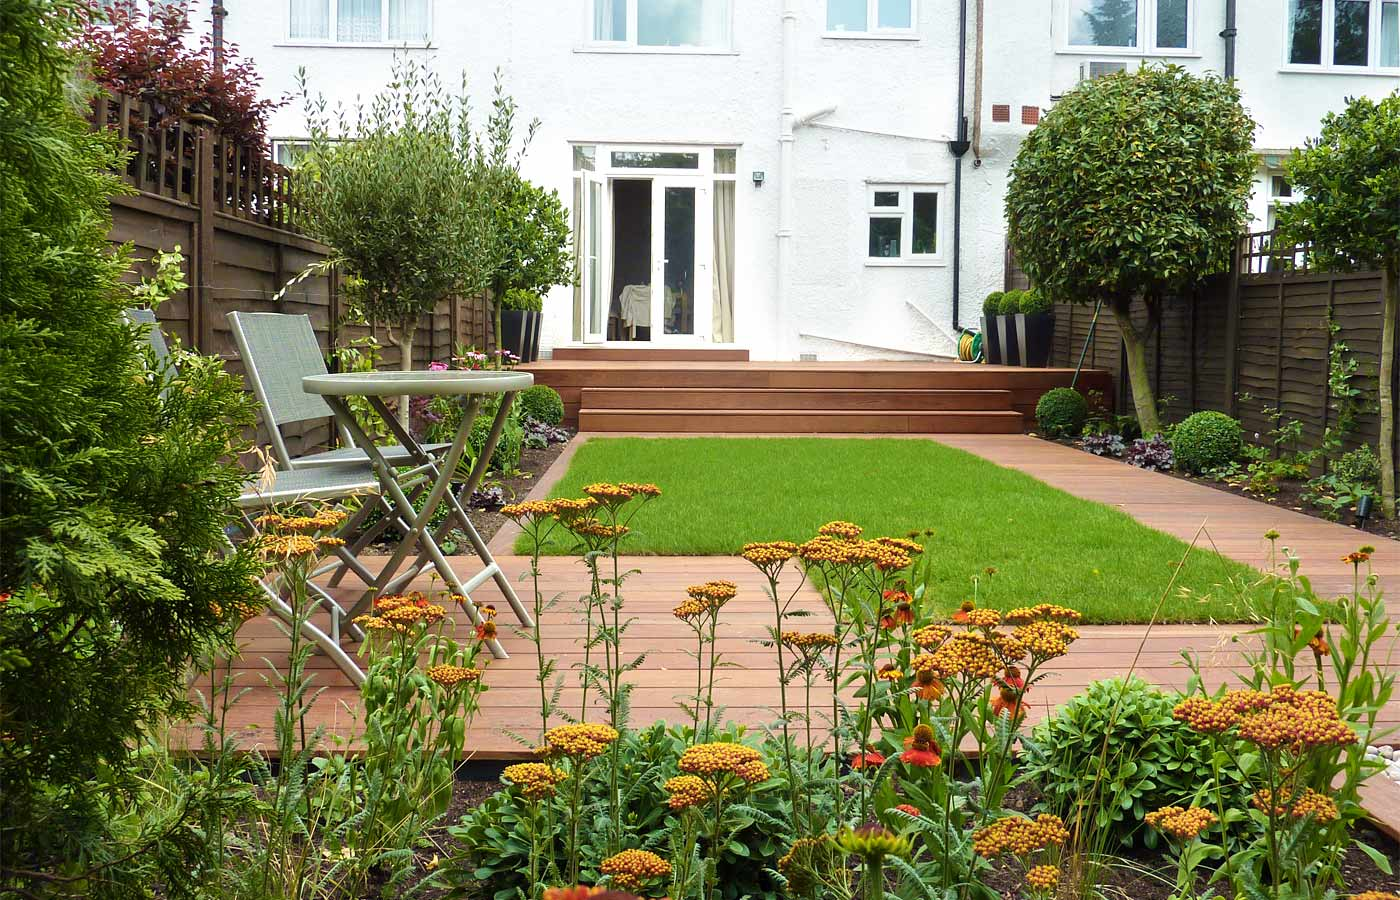 Contemporary garden design london for Home garden design uk